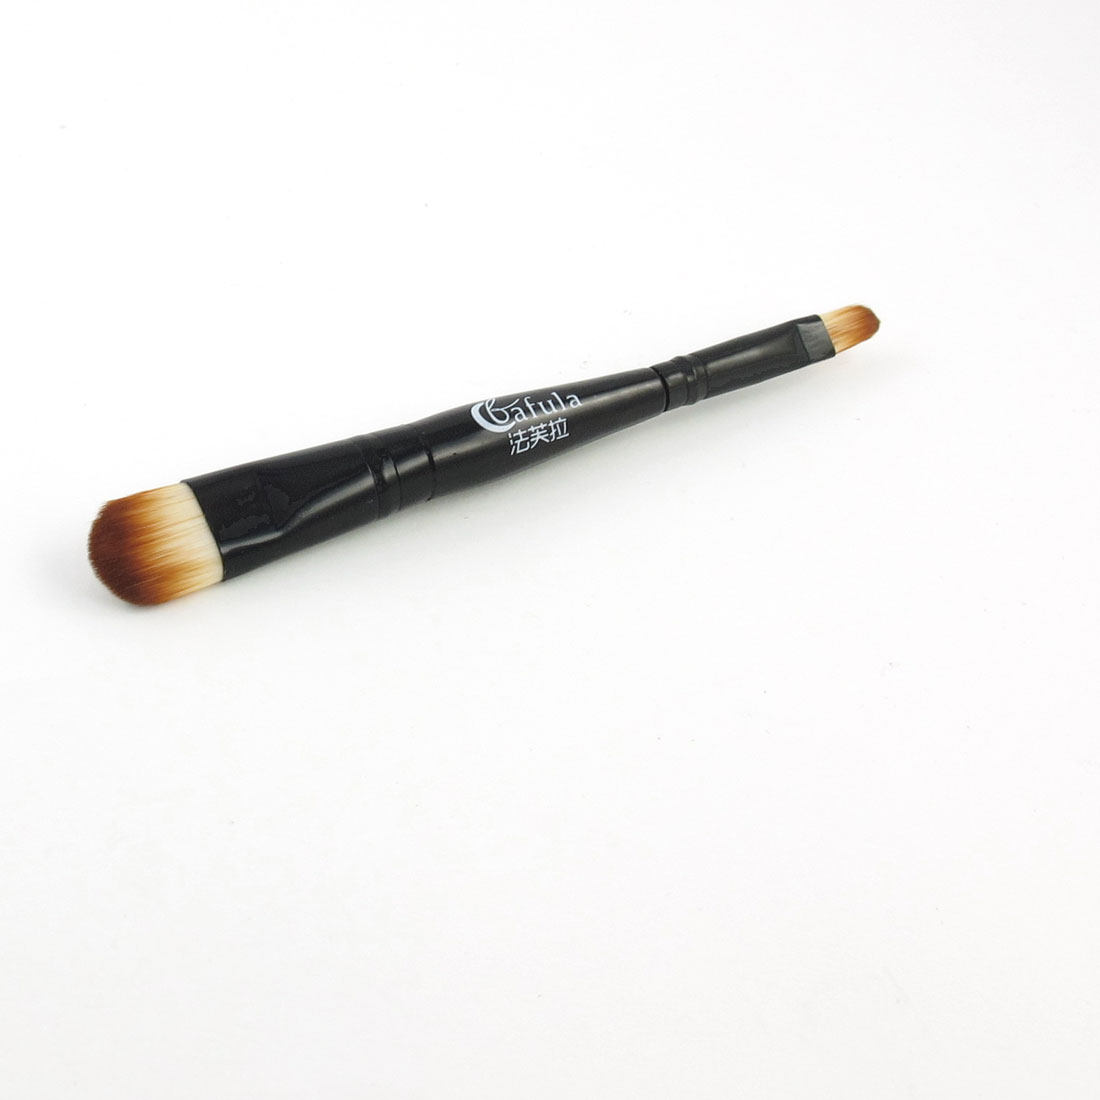 "5.5"" Length Double End Eyeshadow Makeup Brush Black for Ladies"